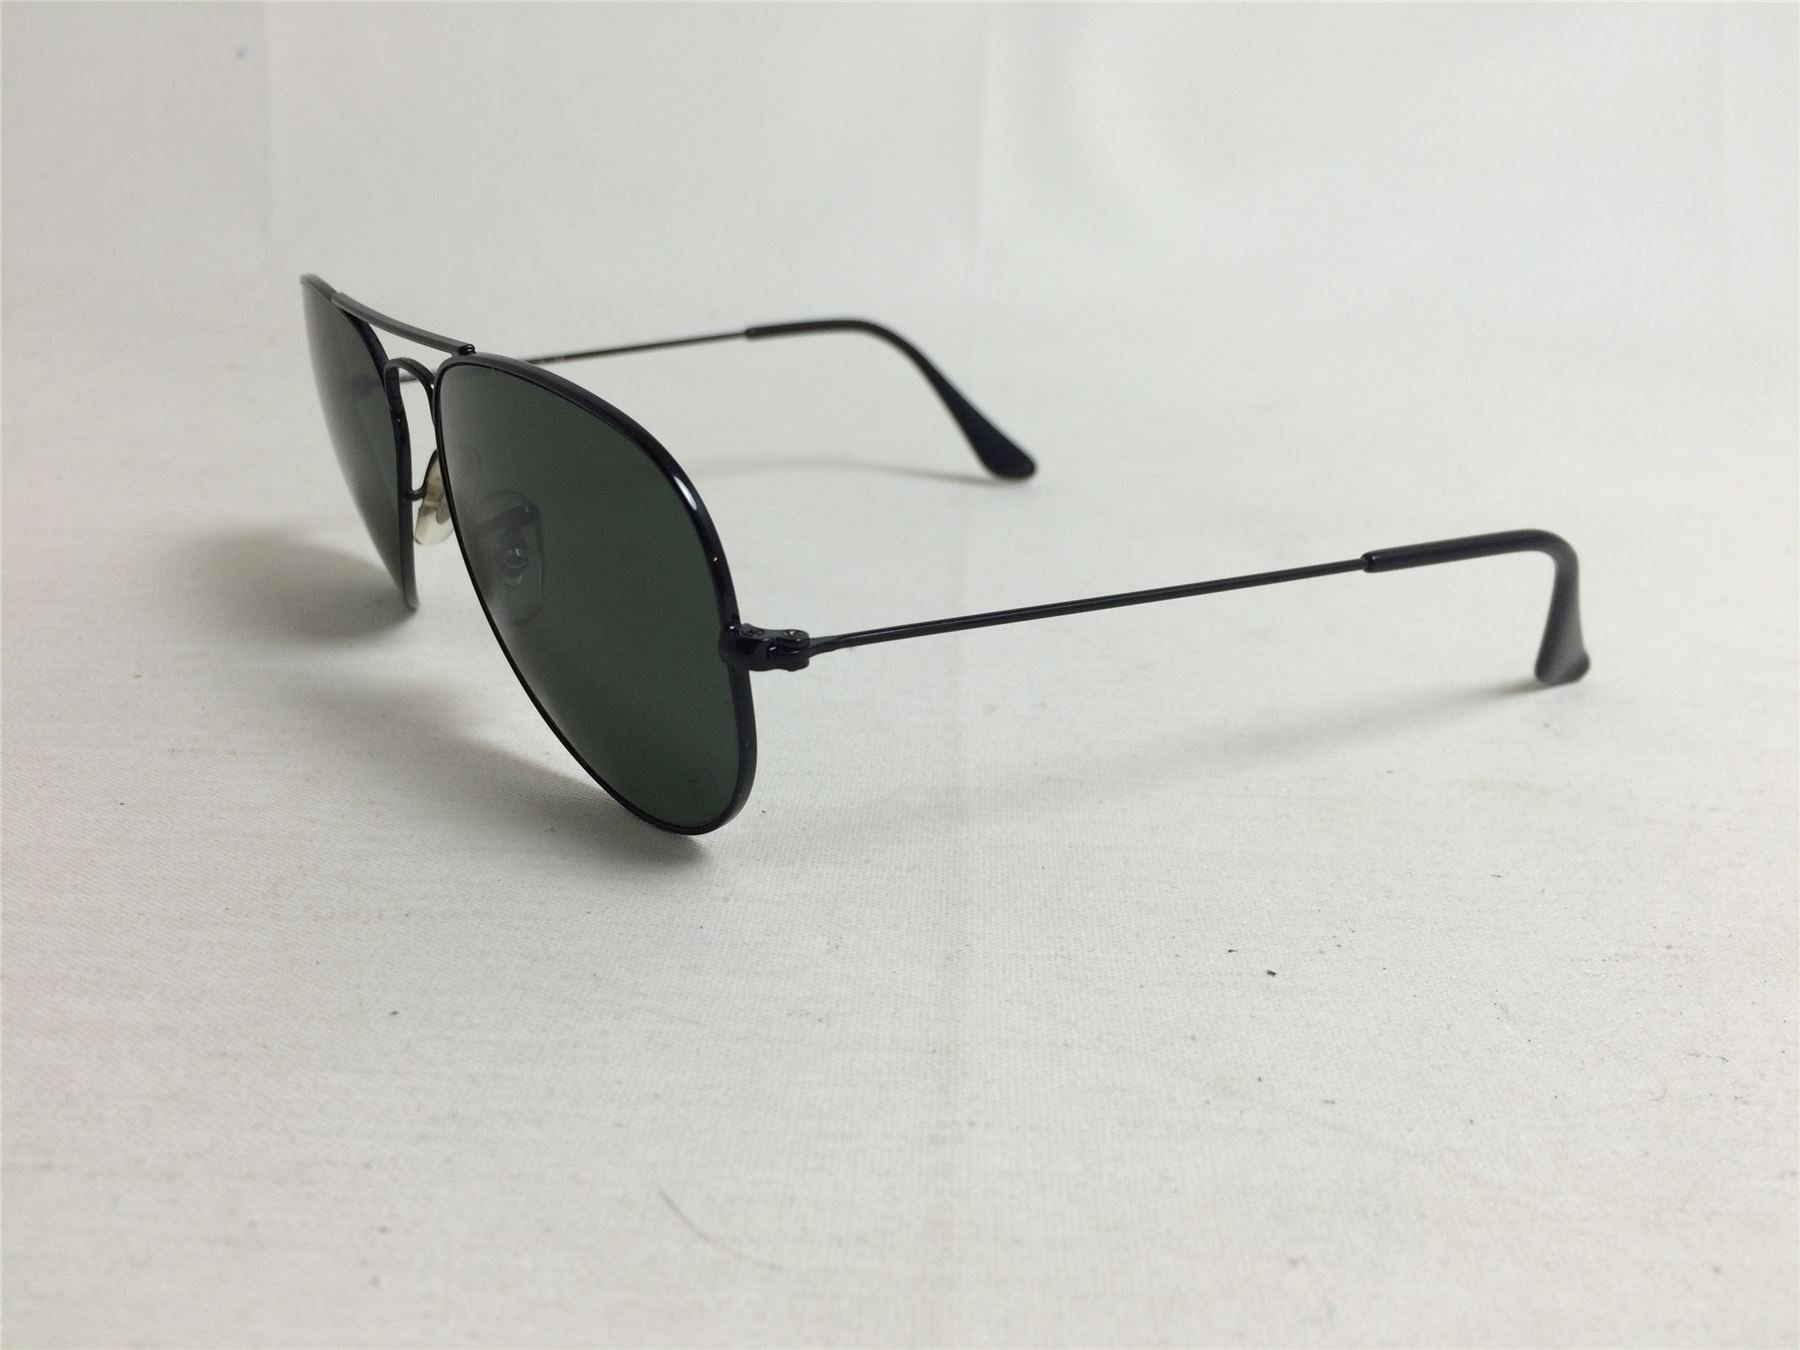 Black Metal Frame Glasses : Ray Ban Aviator RB3025 Sunglasses Black Metal Frame eBay